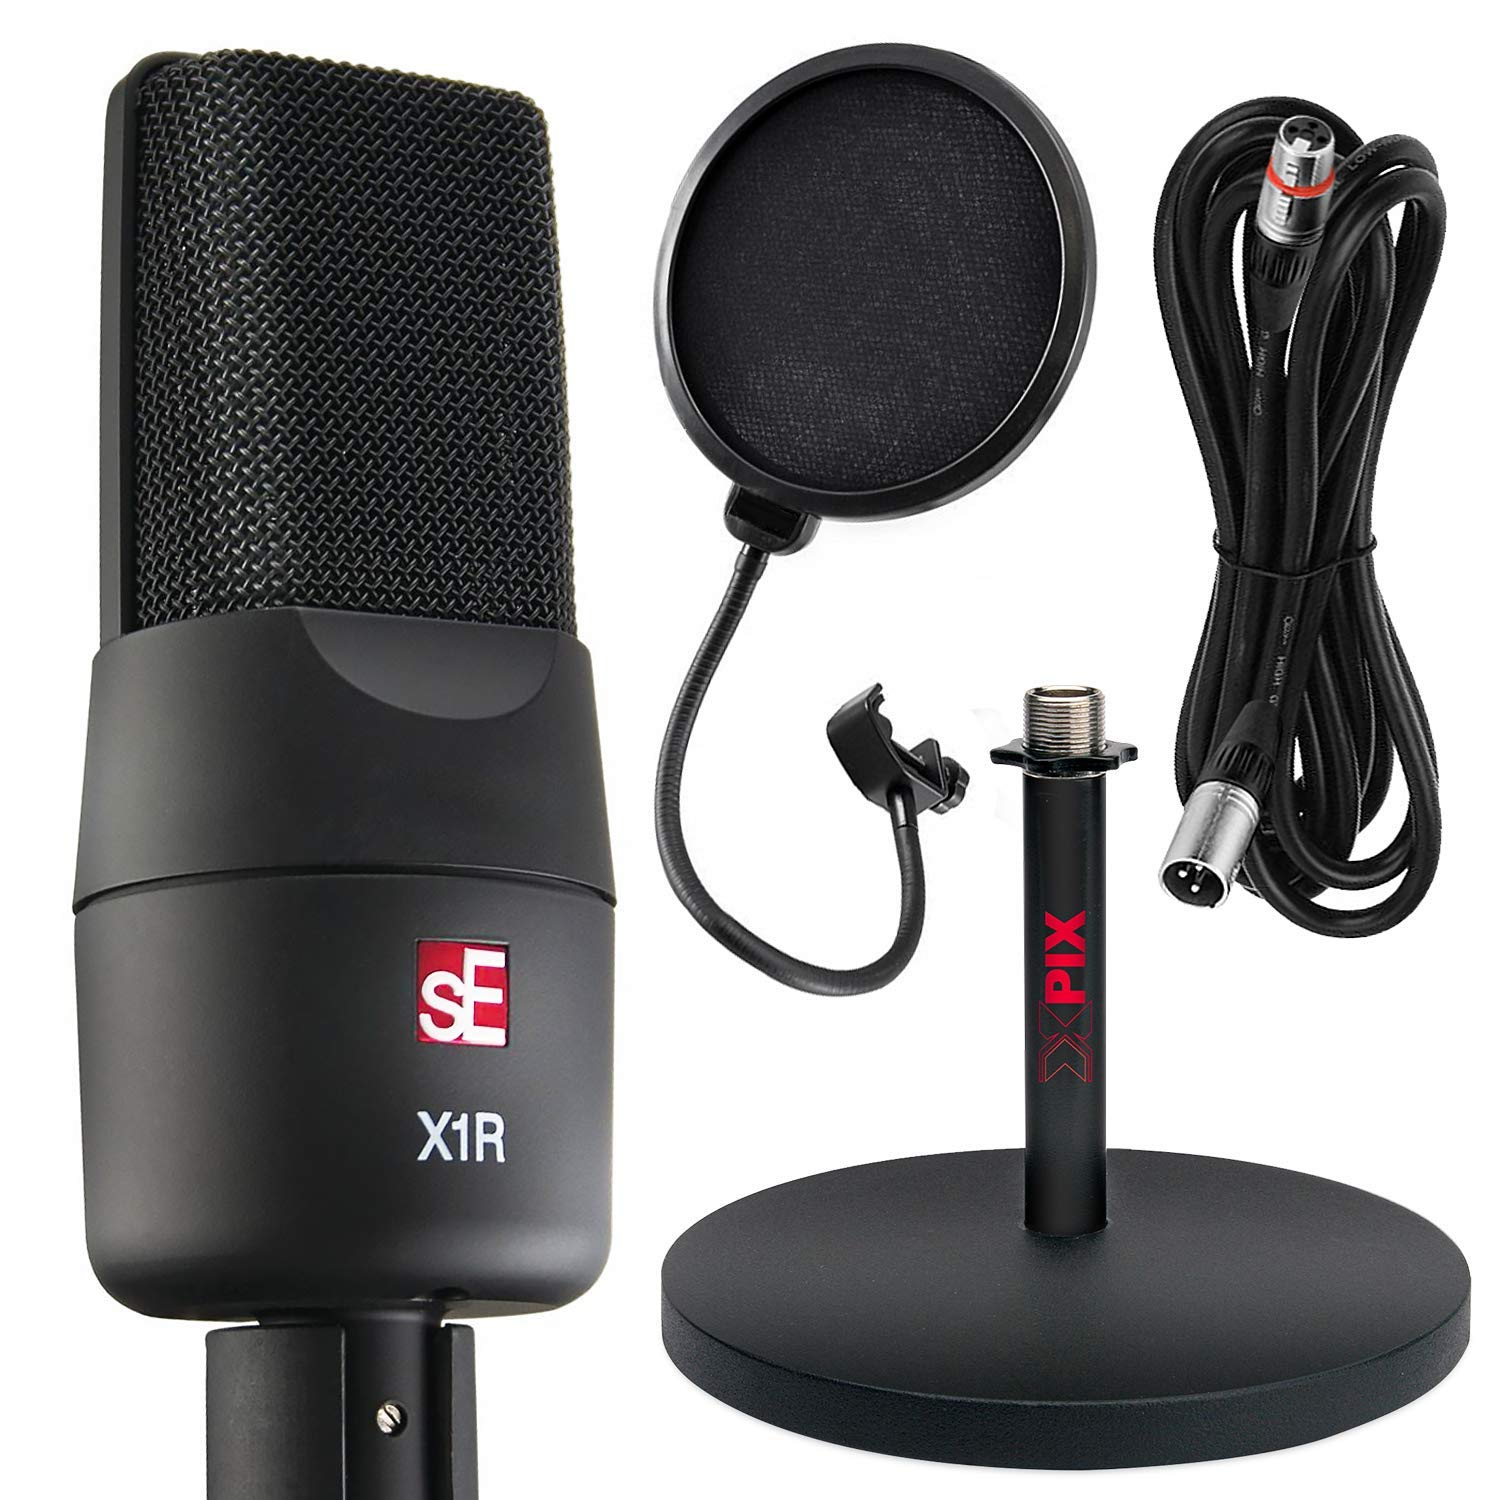 sE Electronics sE X1R Ribbon Microphone with Xpix Mic Stand & Accessory Bundle